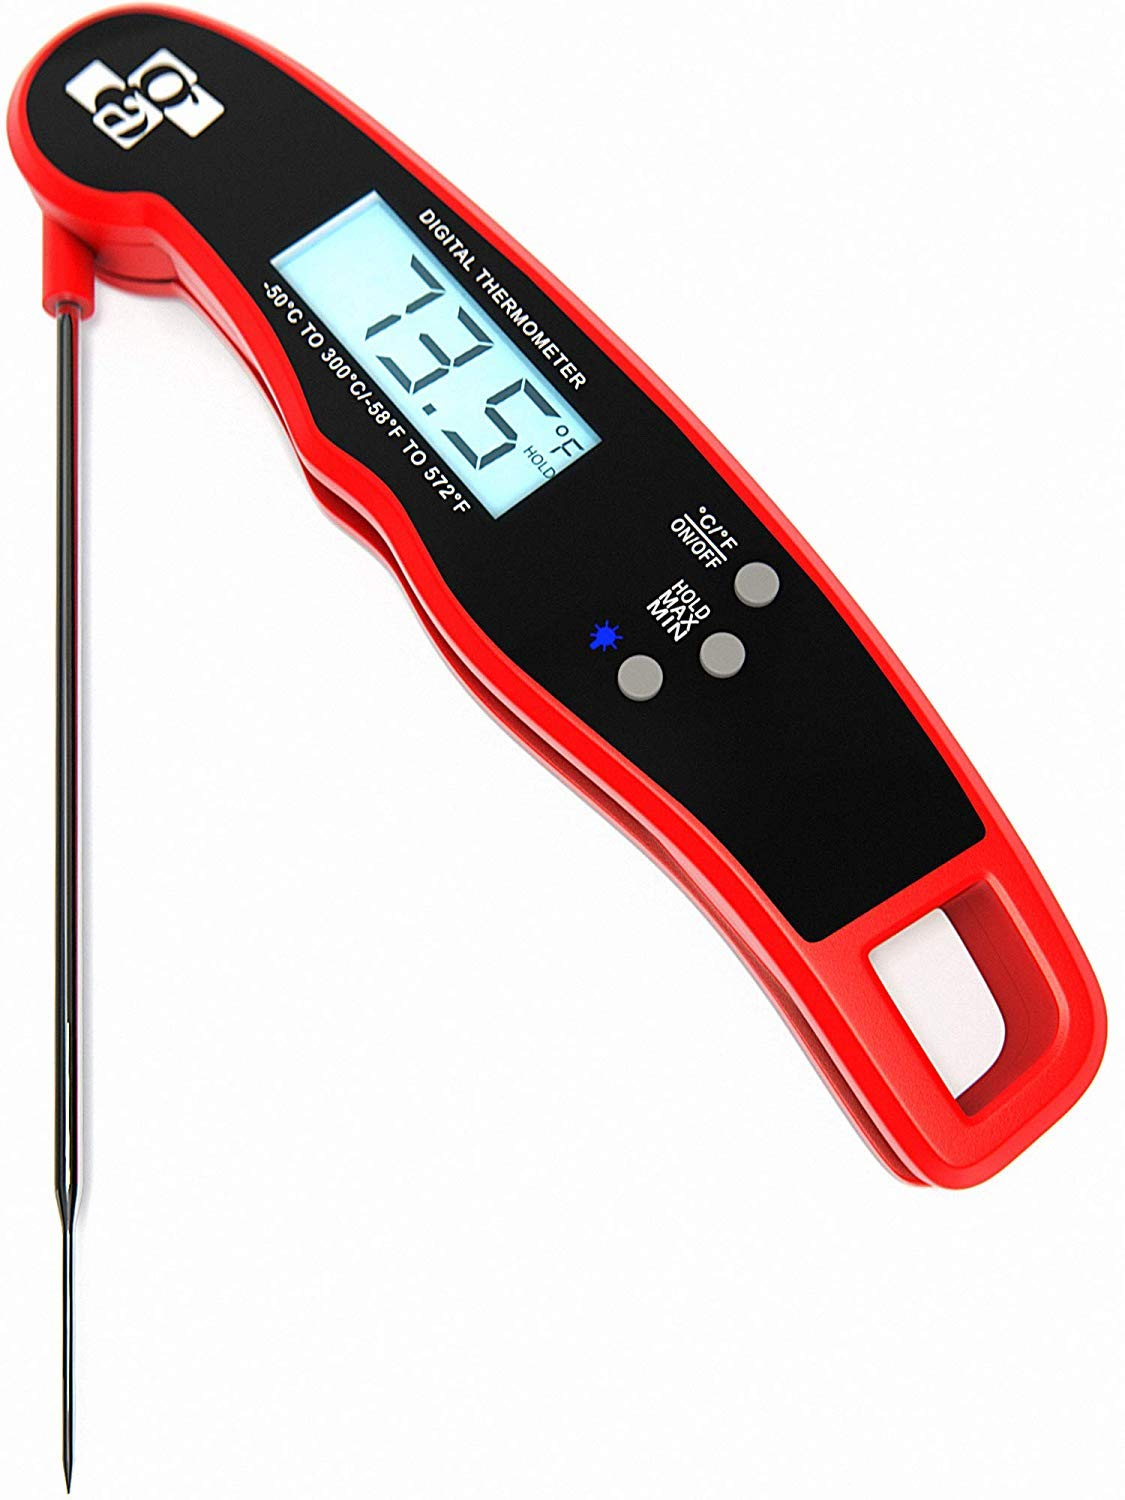 Digital Meat Thermometer Instant Read - Ultra Fast IP67 Waterproof Food Thermometer - Outdoor Cooking Thermometer for Grill BBQ - Folding Metal Kitchen Grilling Thermometer